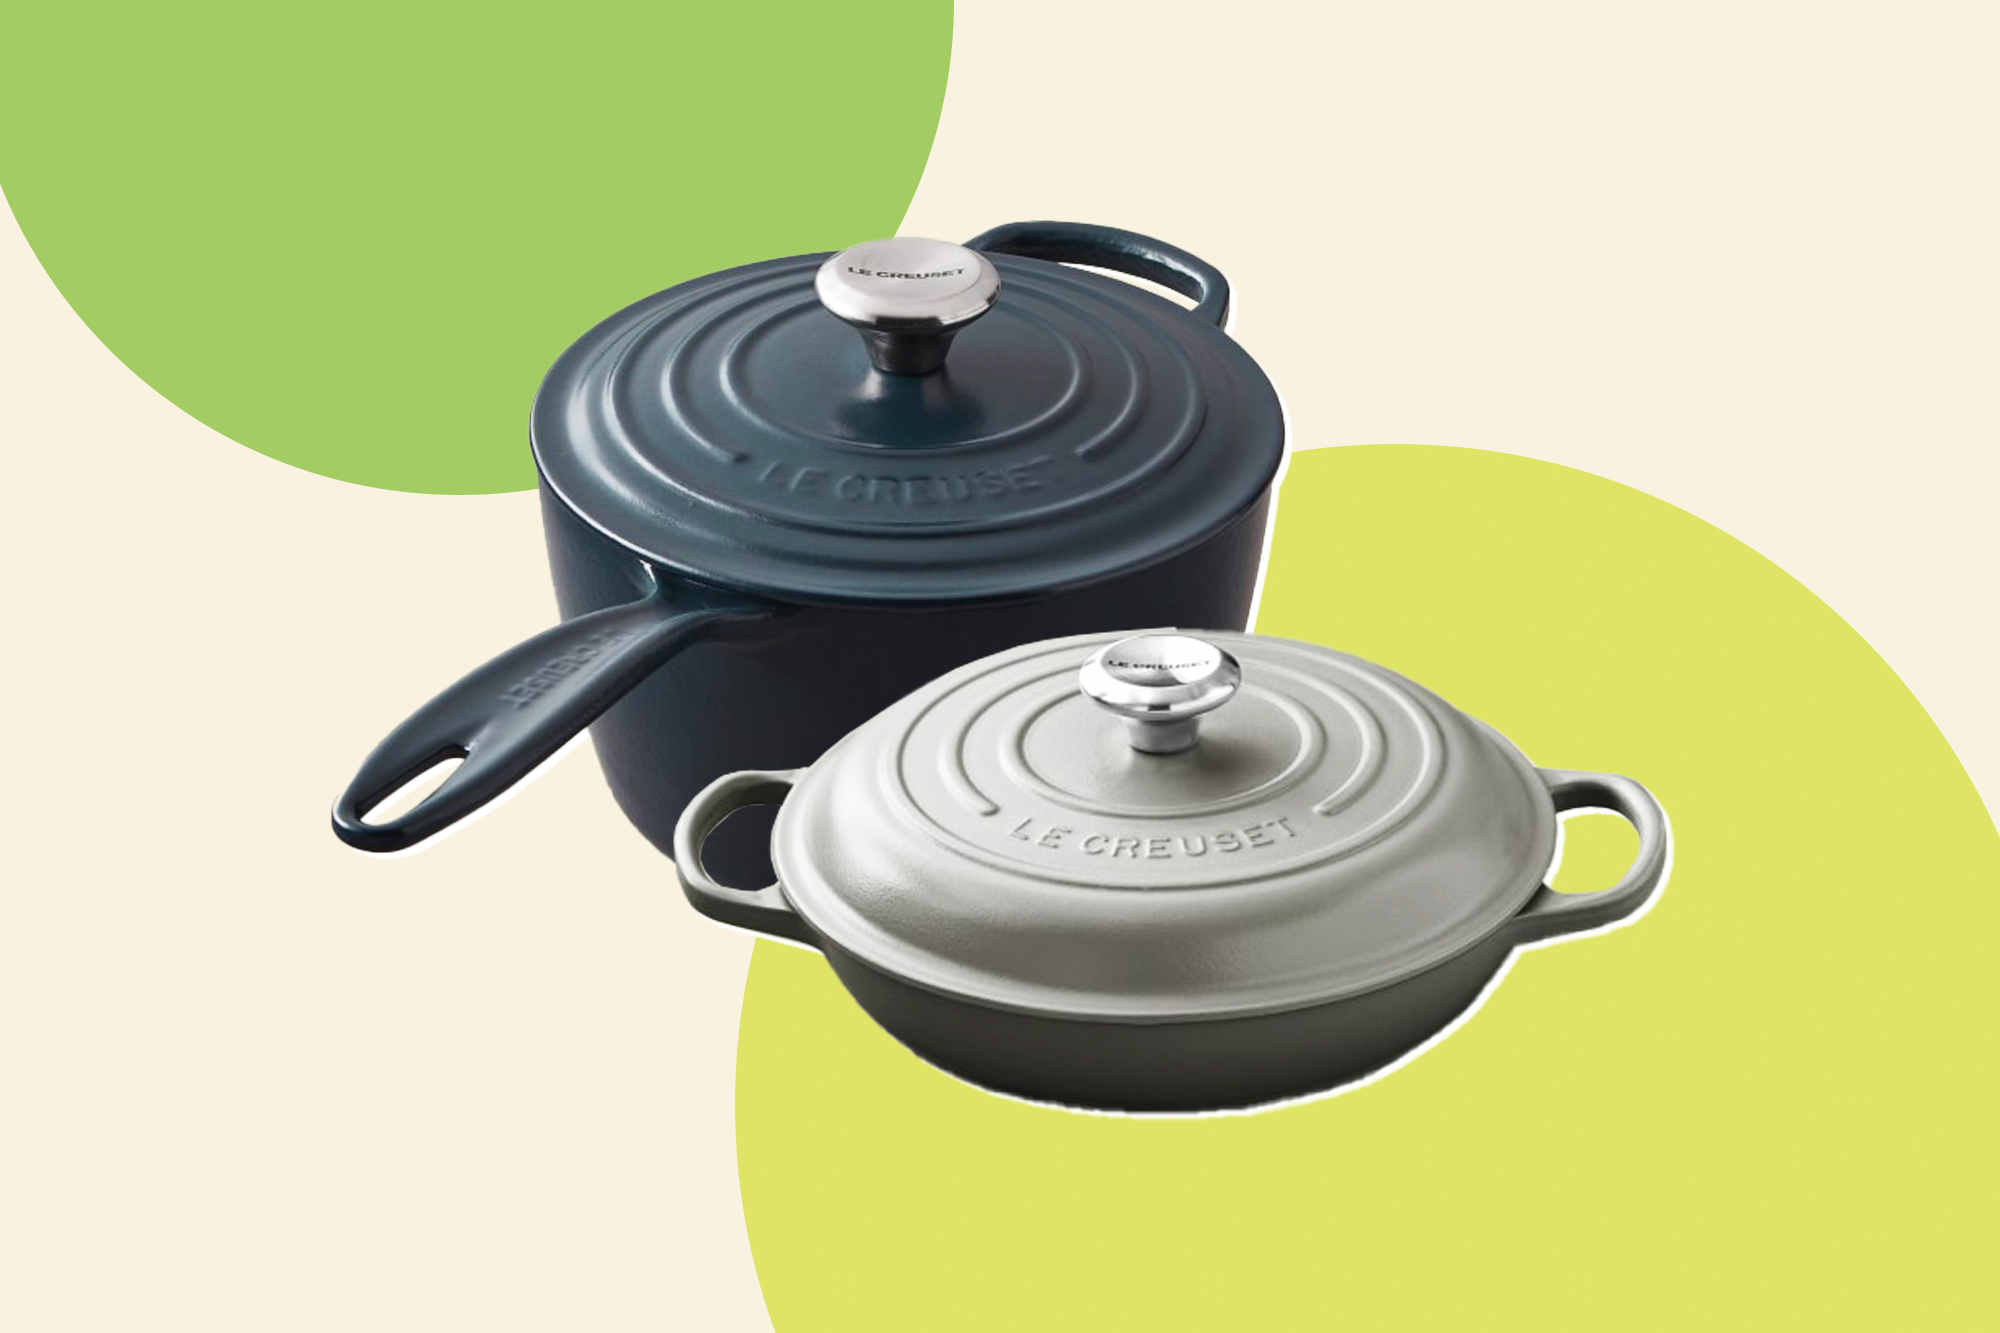 le creuset new color chambray